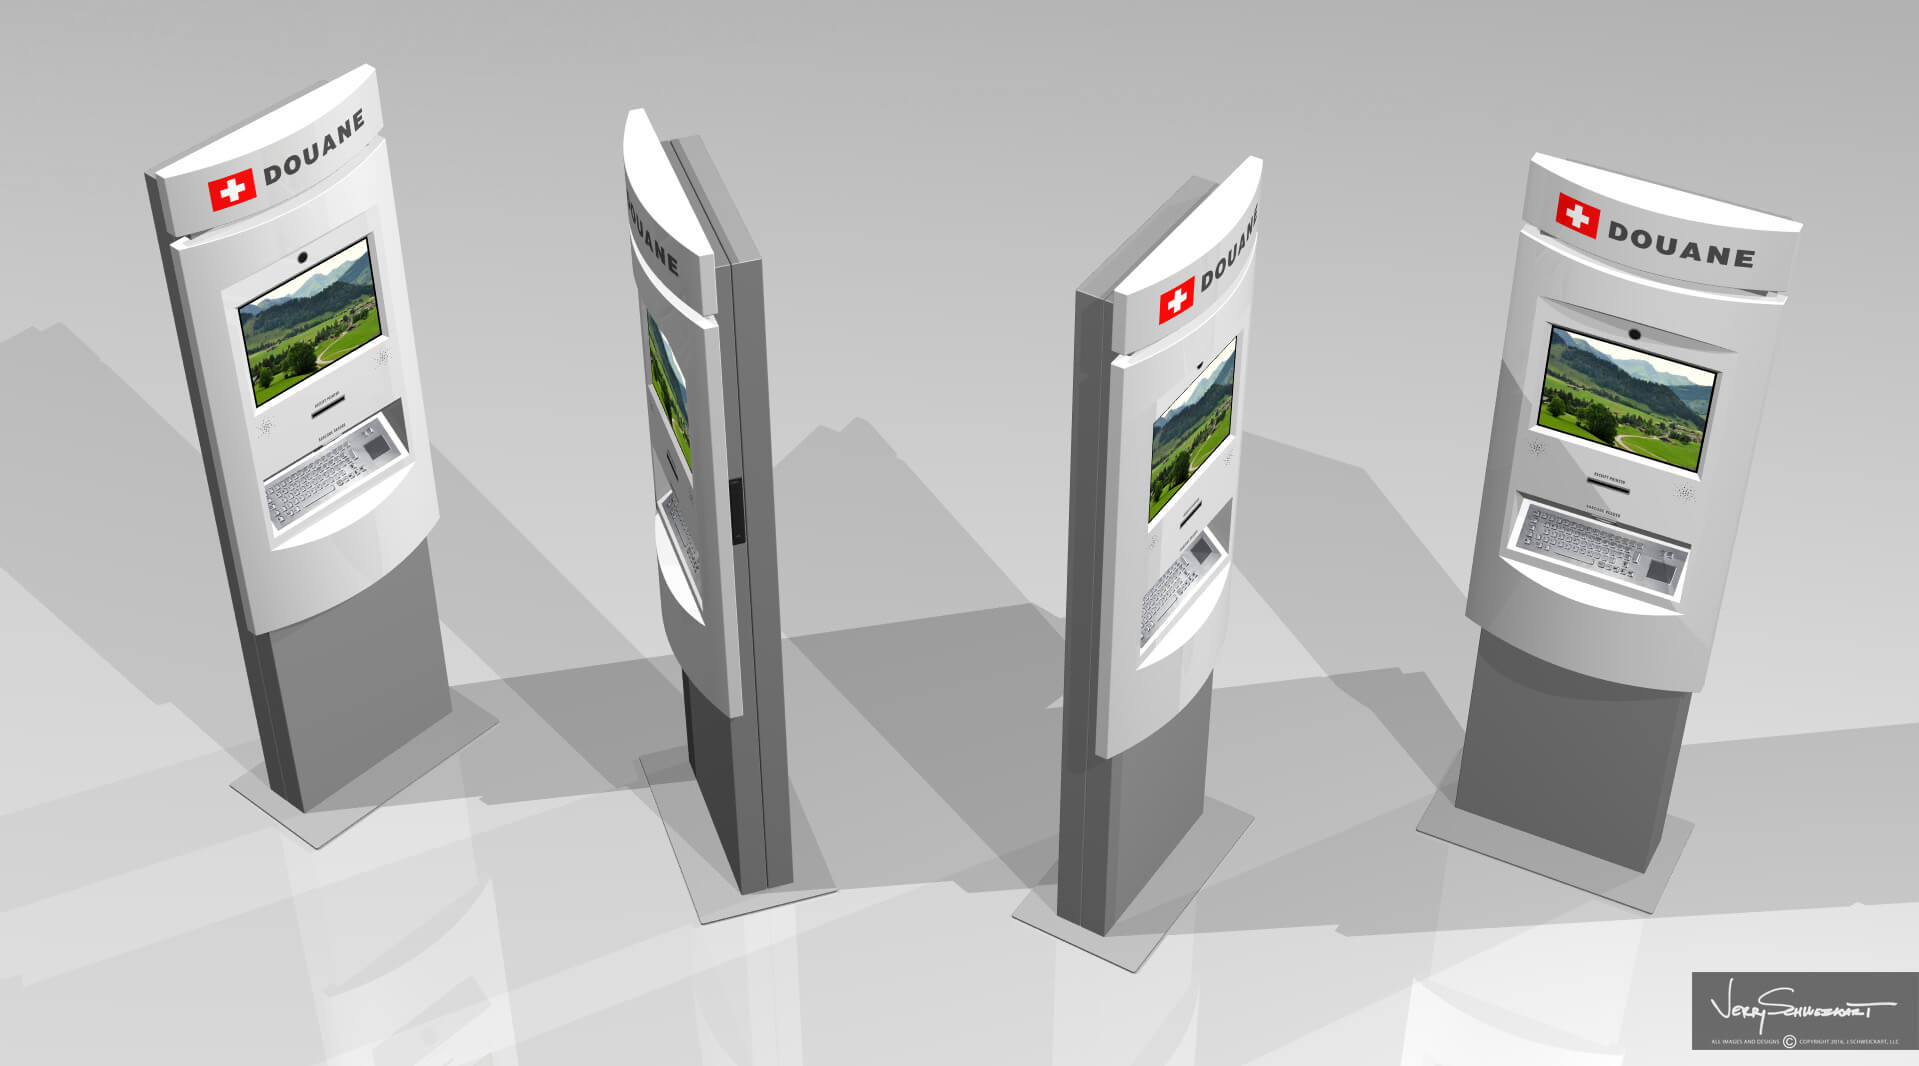 Swiss Customs Kiosk designed by Industrial Designer Jer Schweickart